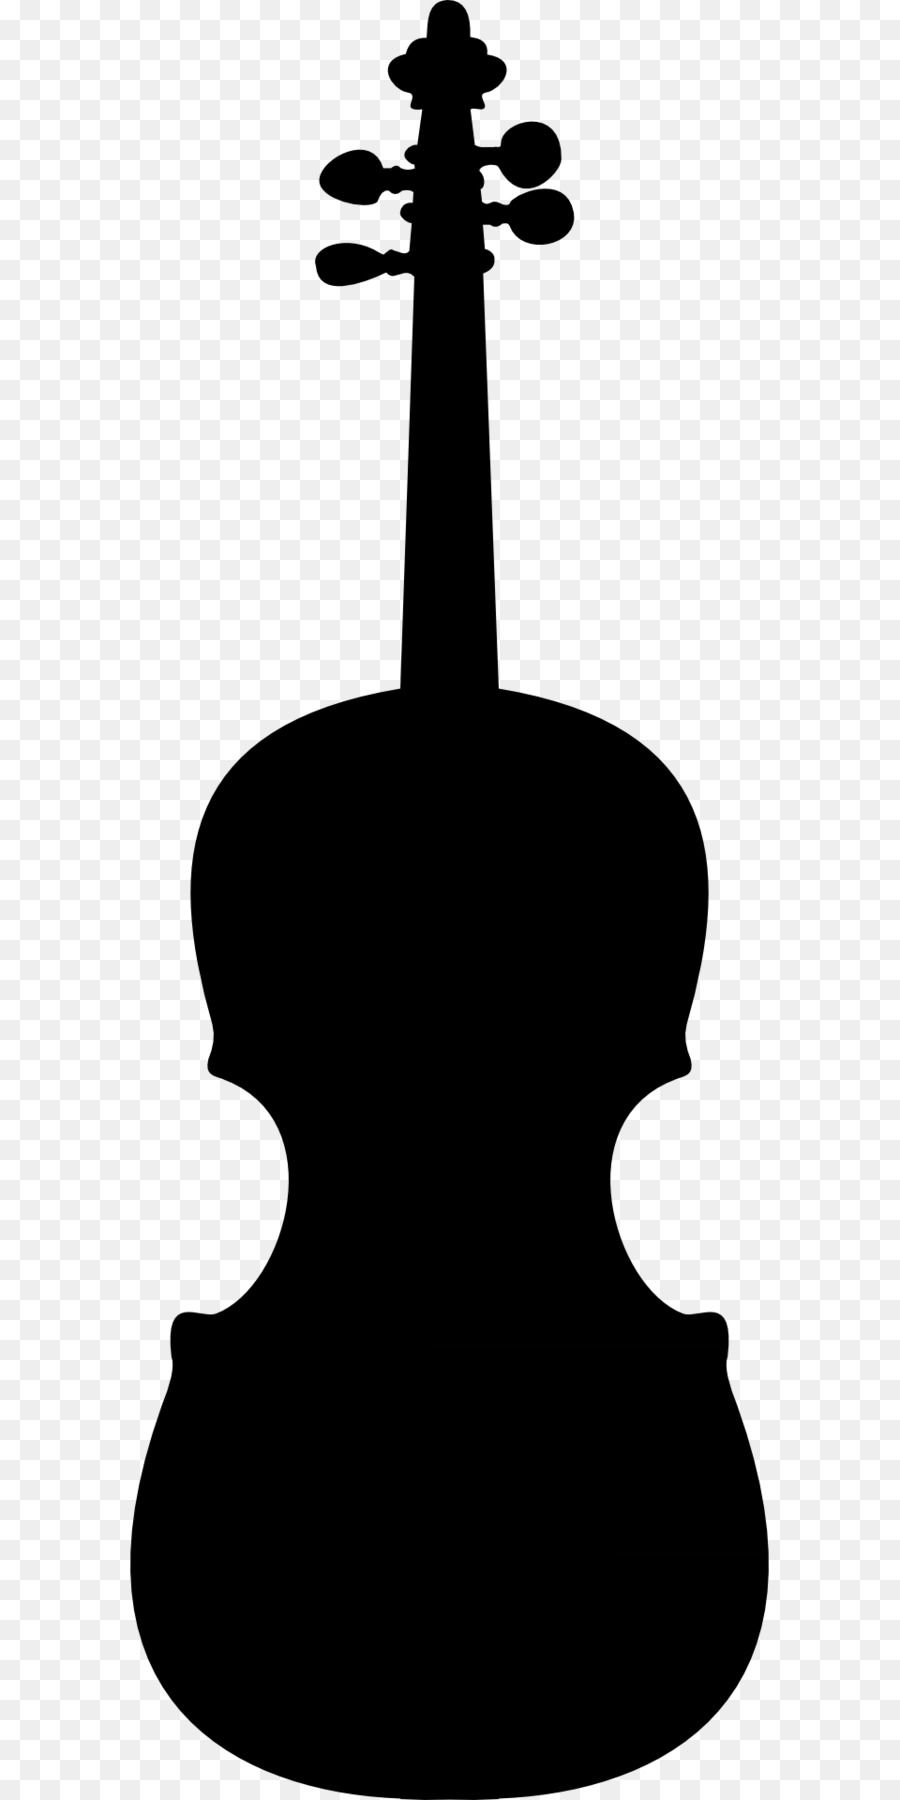 Violin silhouette clipart image download Violin Silhouette Clip art - violin | musica | Silhouette ... image download